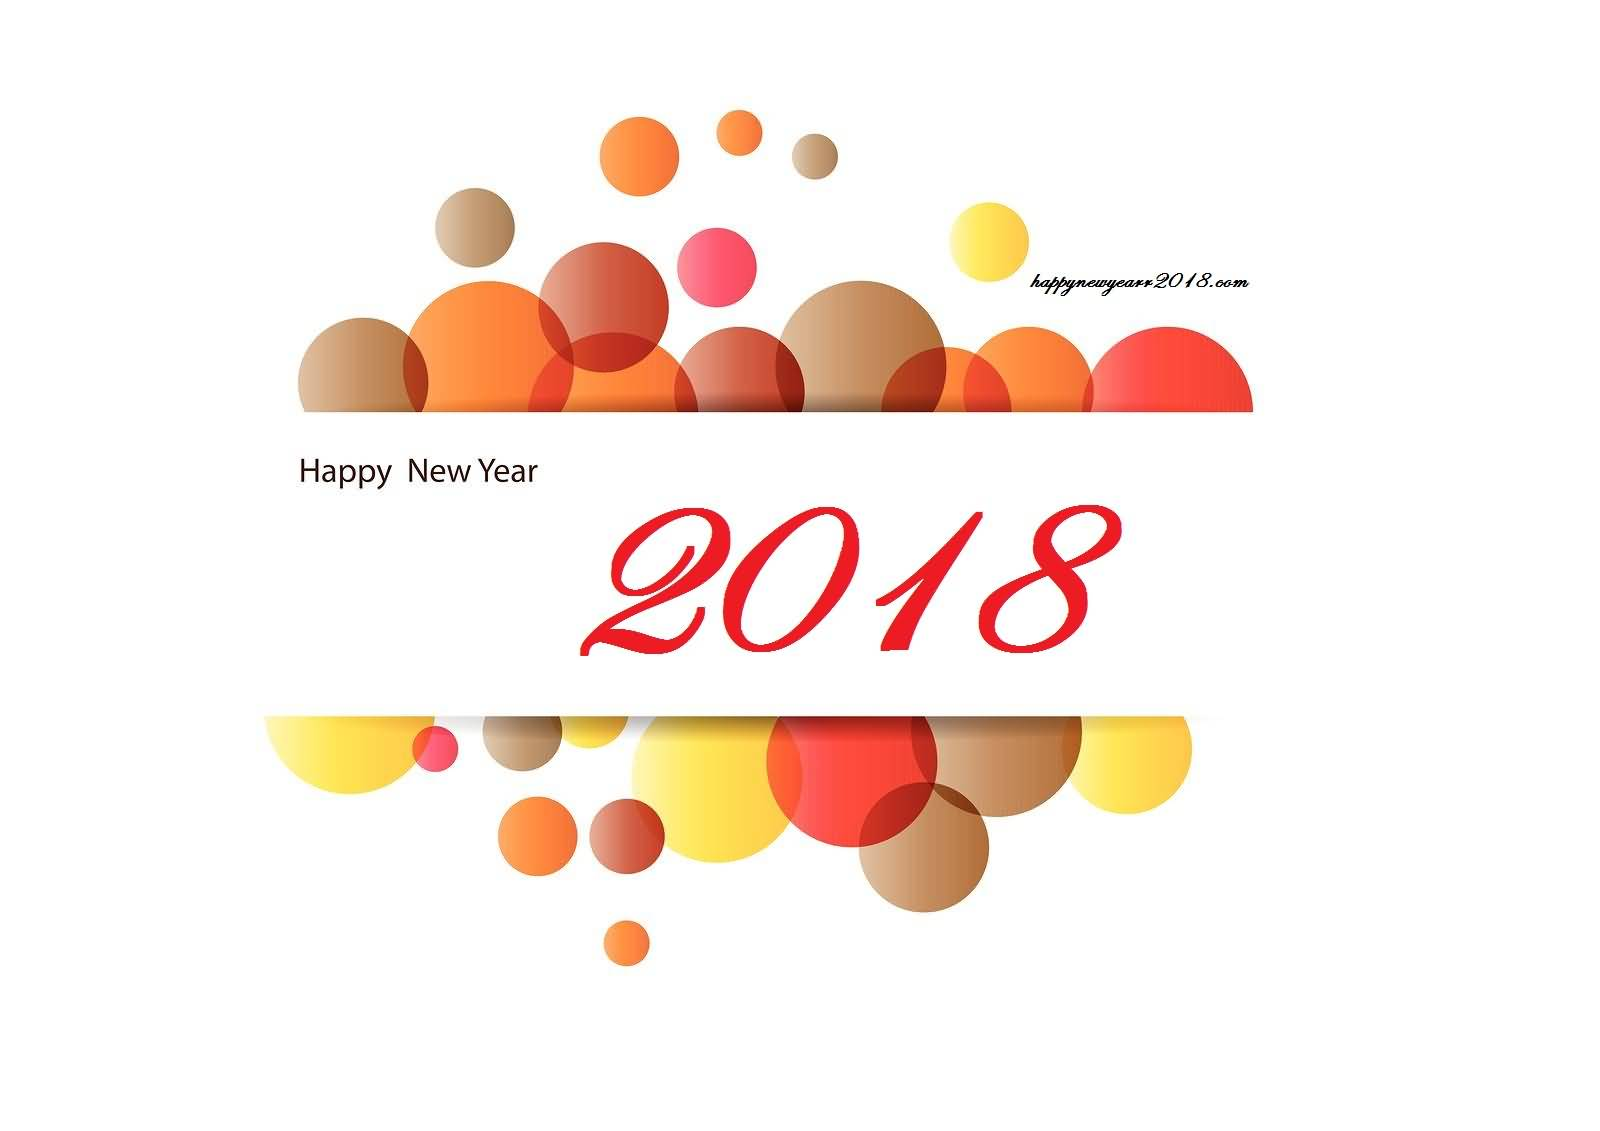 happy new year 2018 cards image picture photo wallpaper 04